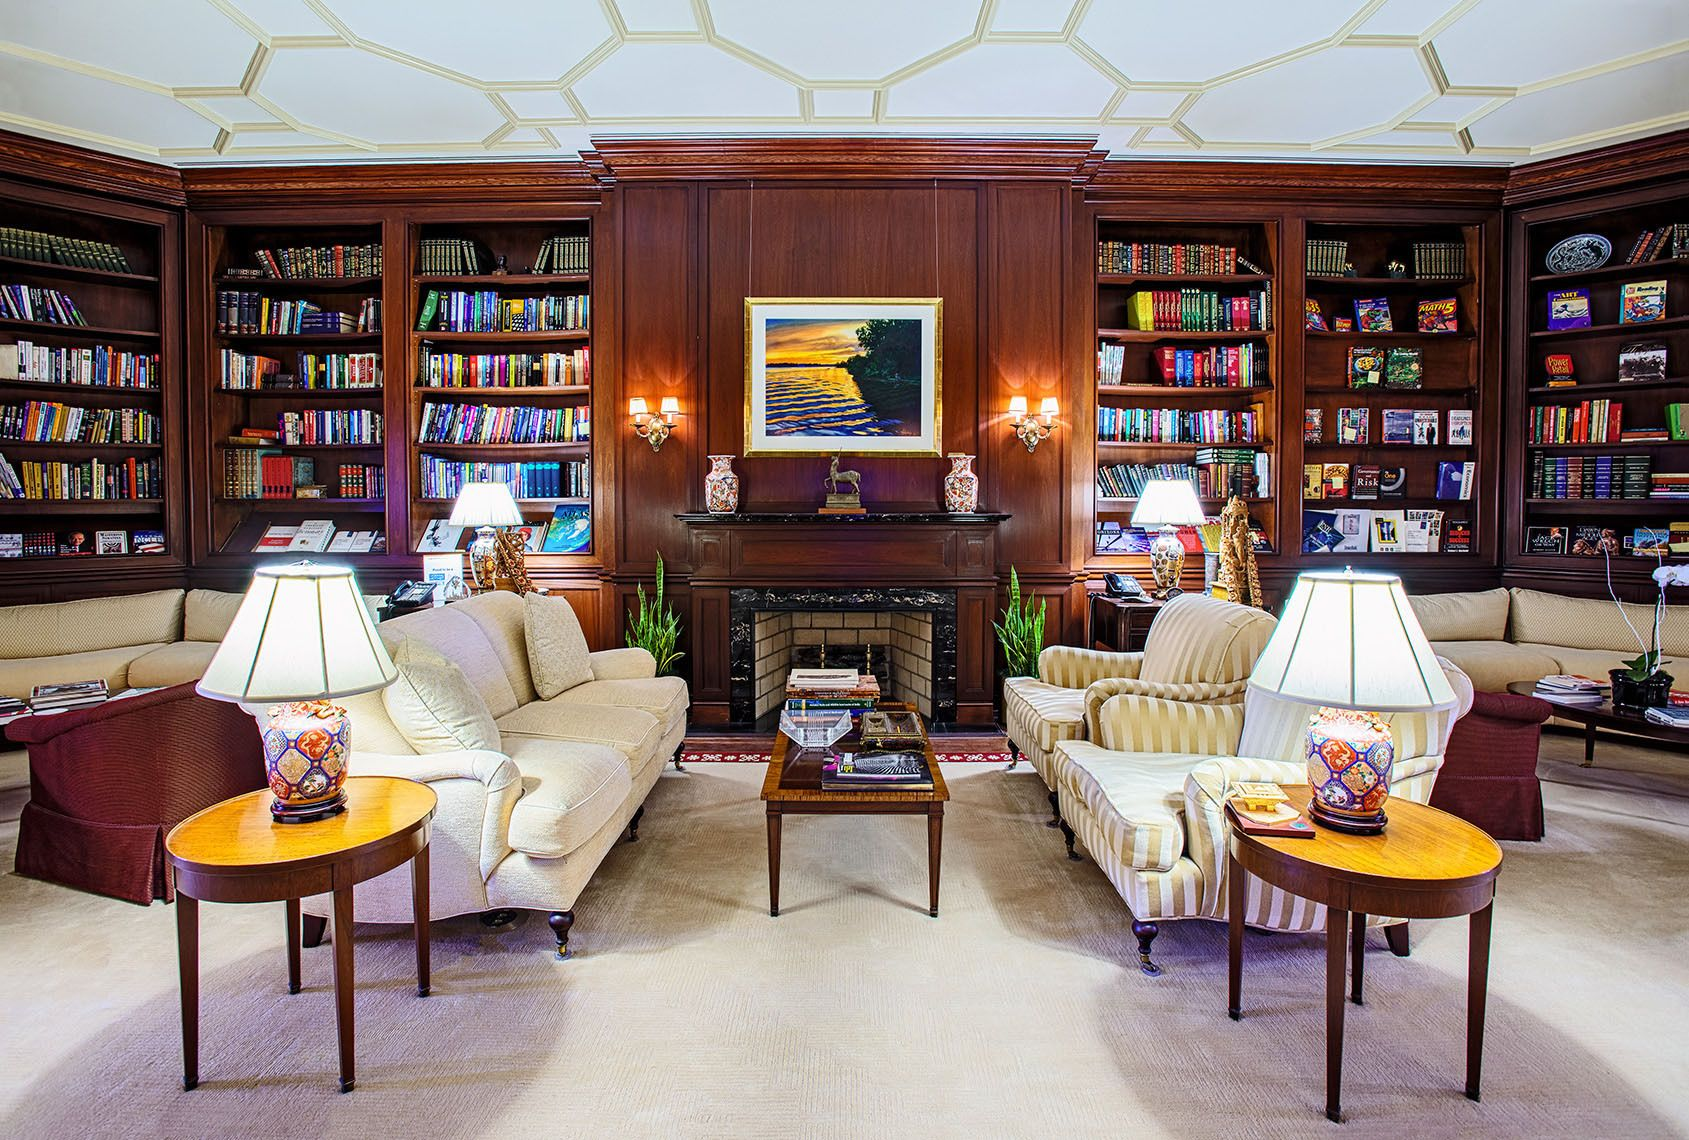 Executive Lounge, 1221 Ave. of the Americas, New York, NY